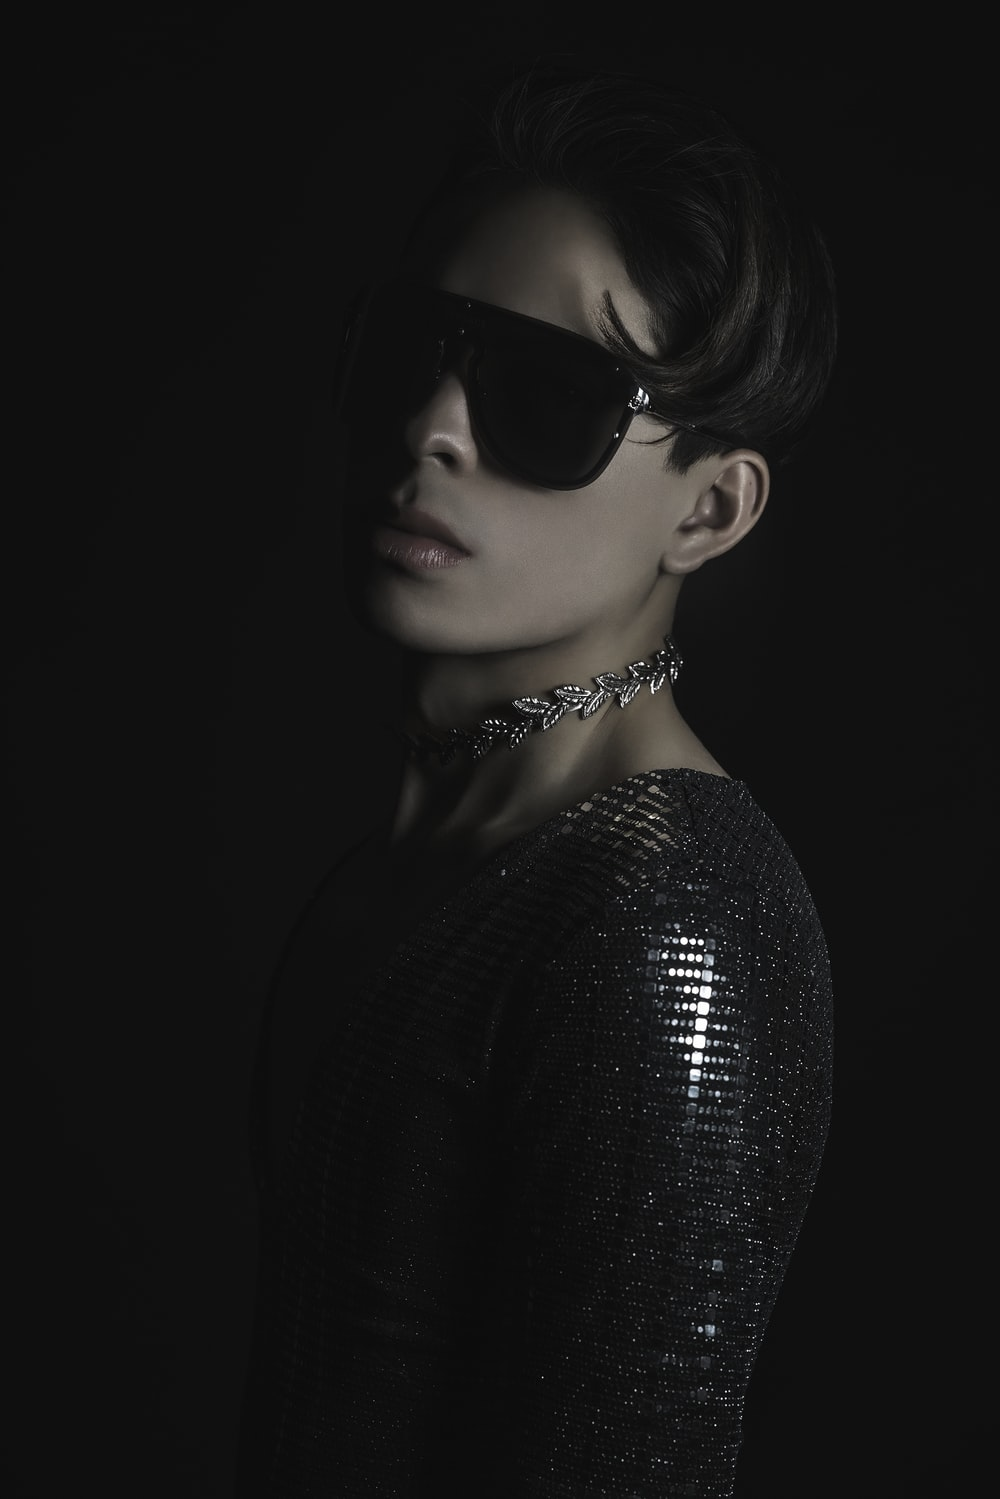 woman in black sunglasses and black shirt